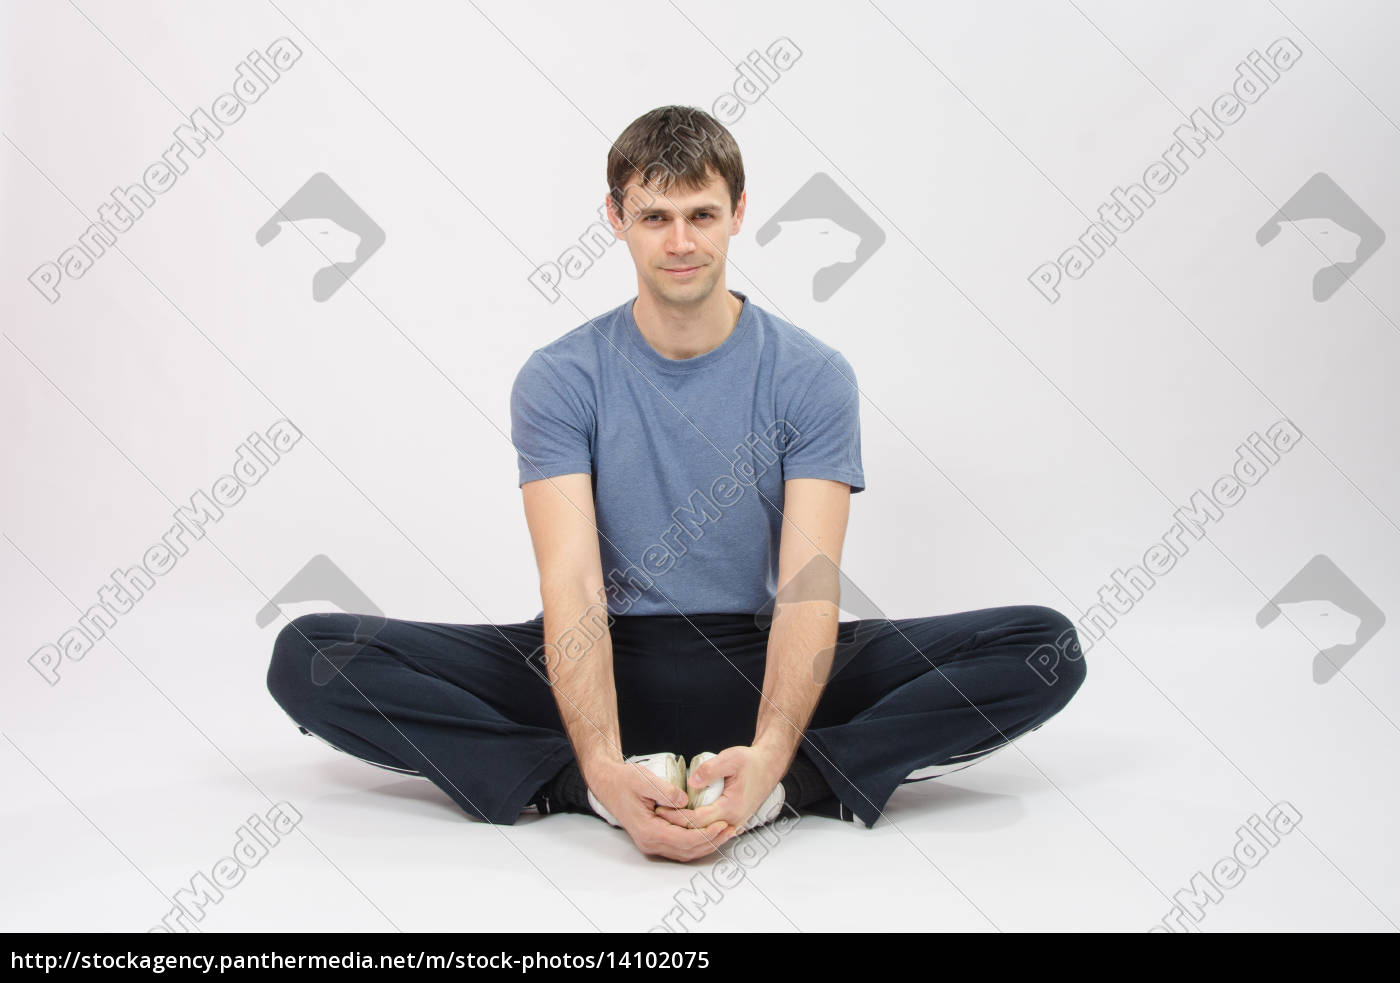 athlete, sitting, holding, hands, your, feet - 14102075